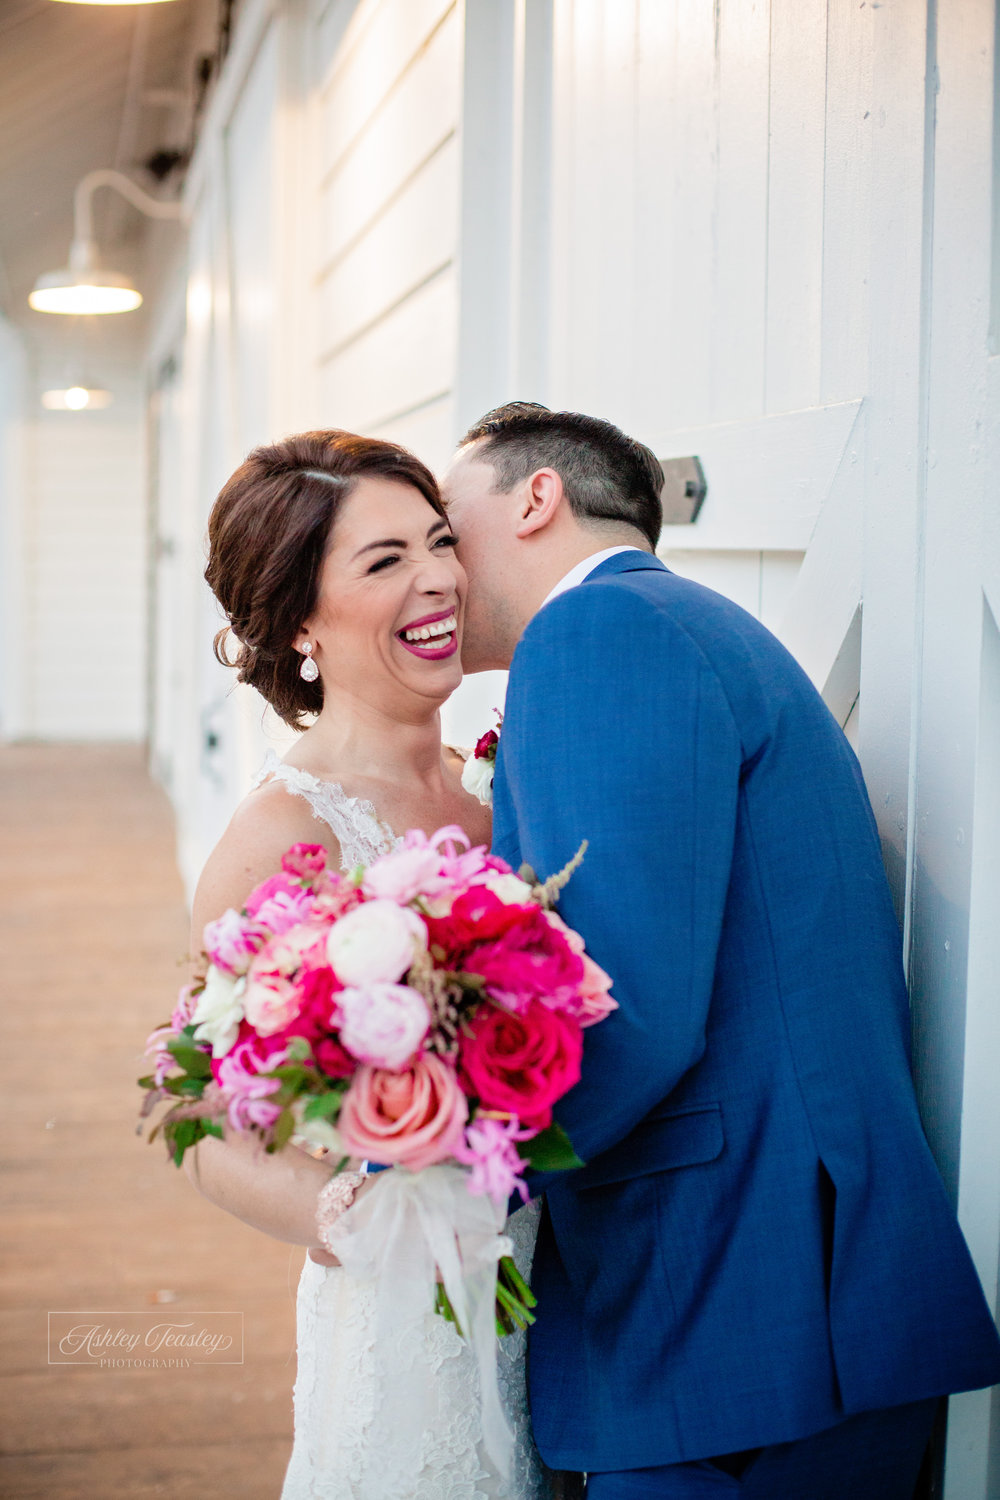 Tarrah & Francisco - The Kimpton Sawyer Hotel - The Firehouse Old Sac - Sacramento Wedding Photographer - Ashley Teasley Photography (95 of 118).jpg